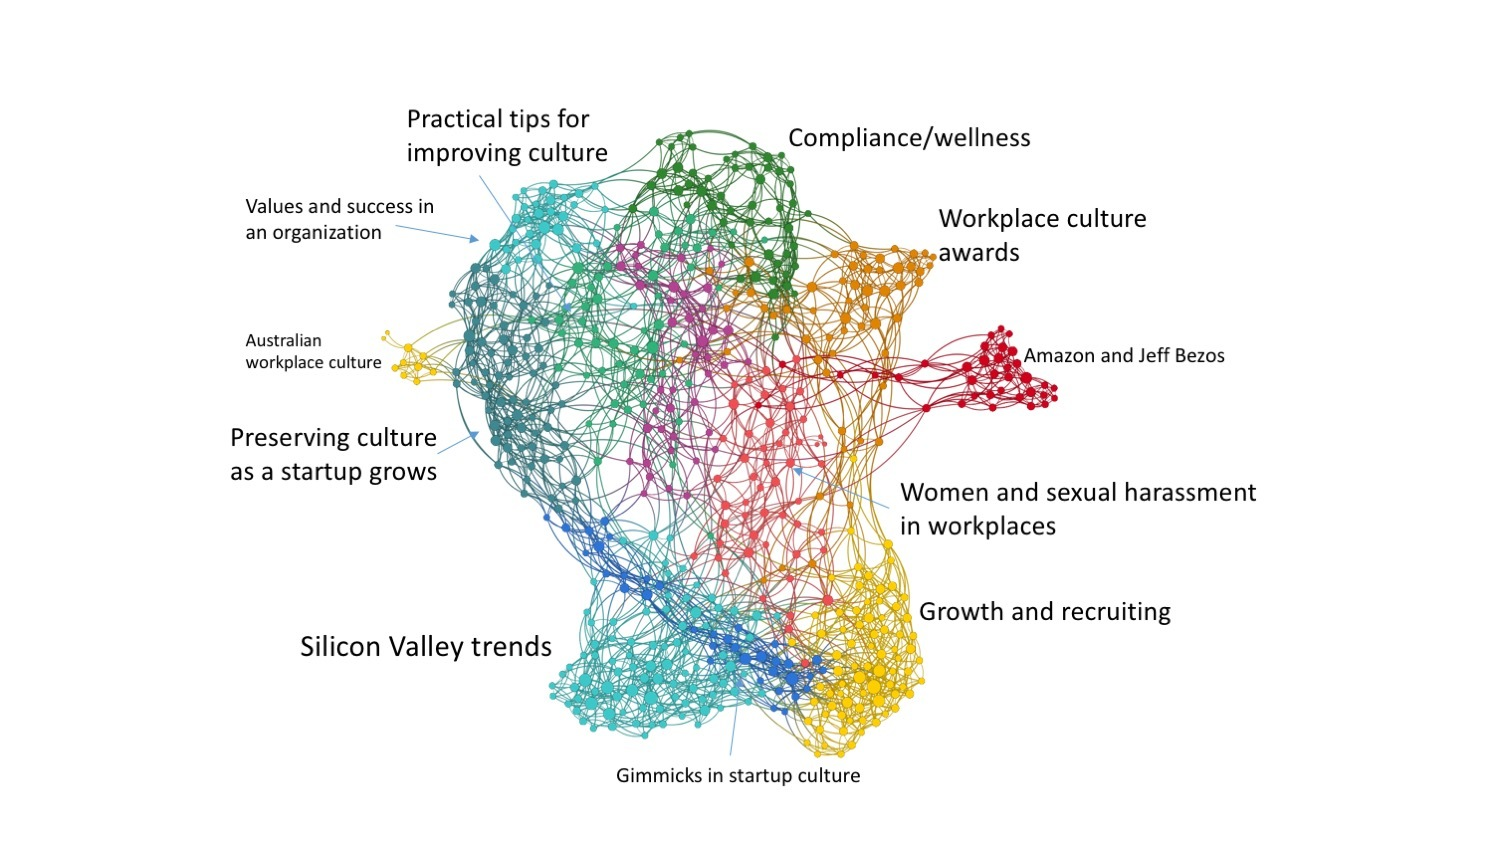 Workplace-culture-main-network.jpg?mtime